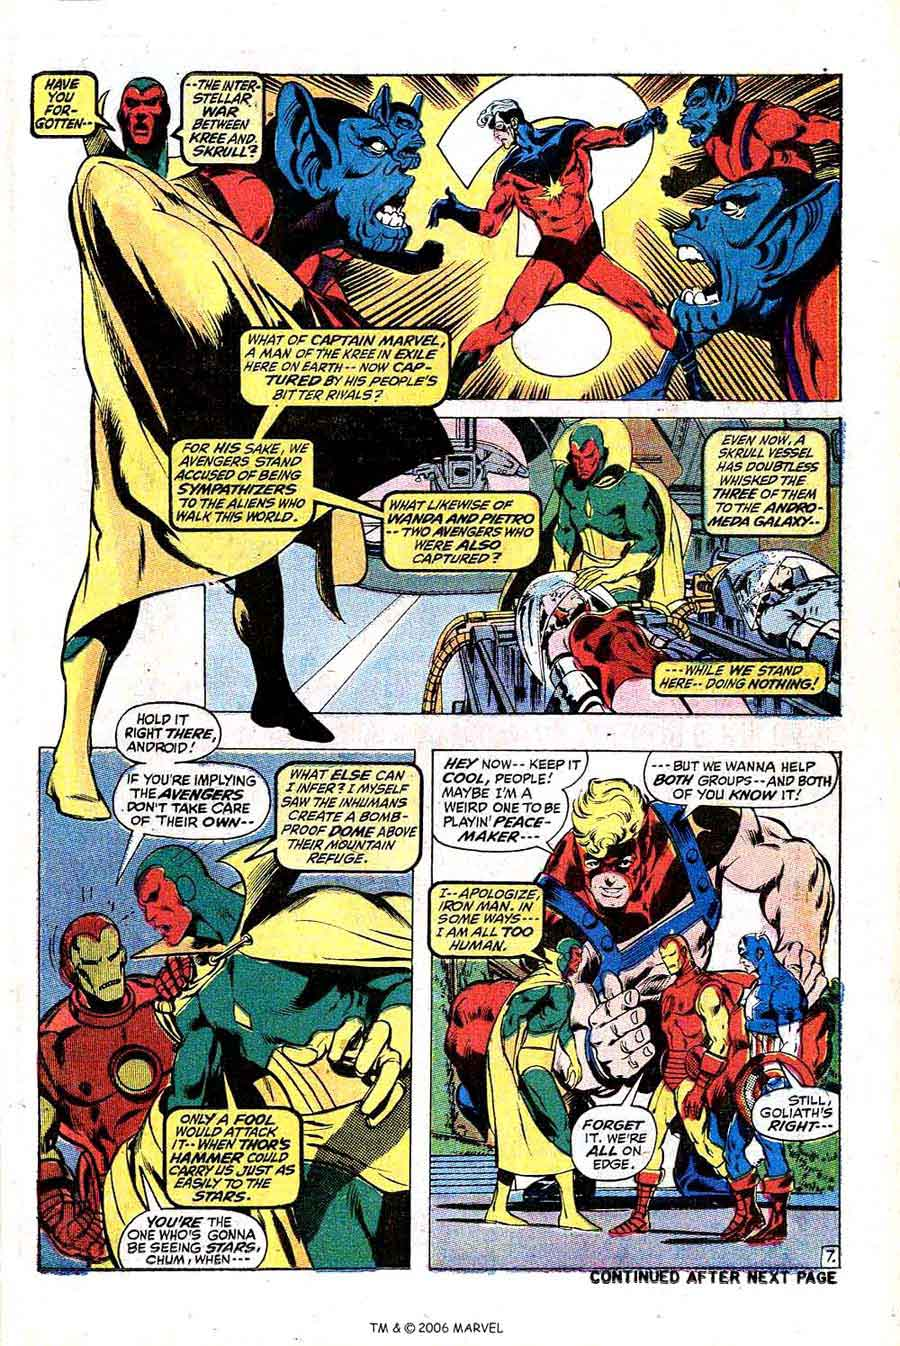 Avengers v1 #95 marvel comic book page art by Neal Adams